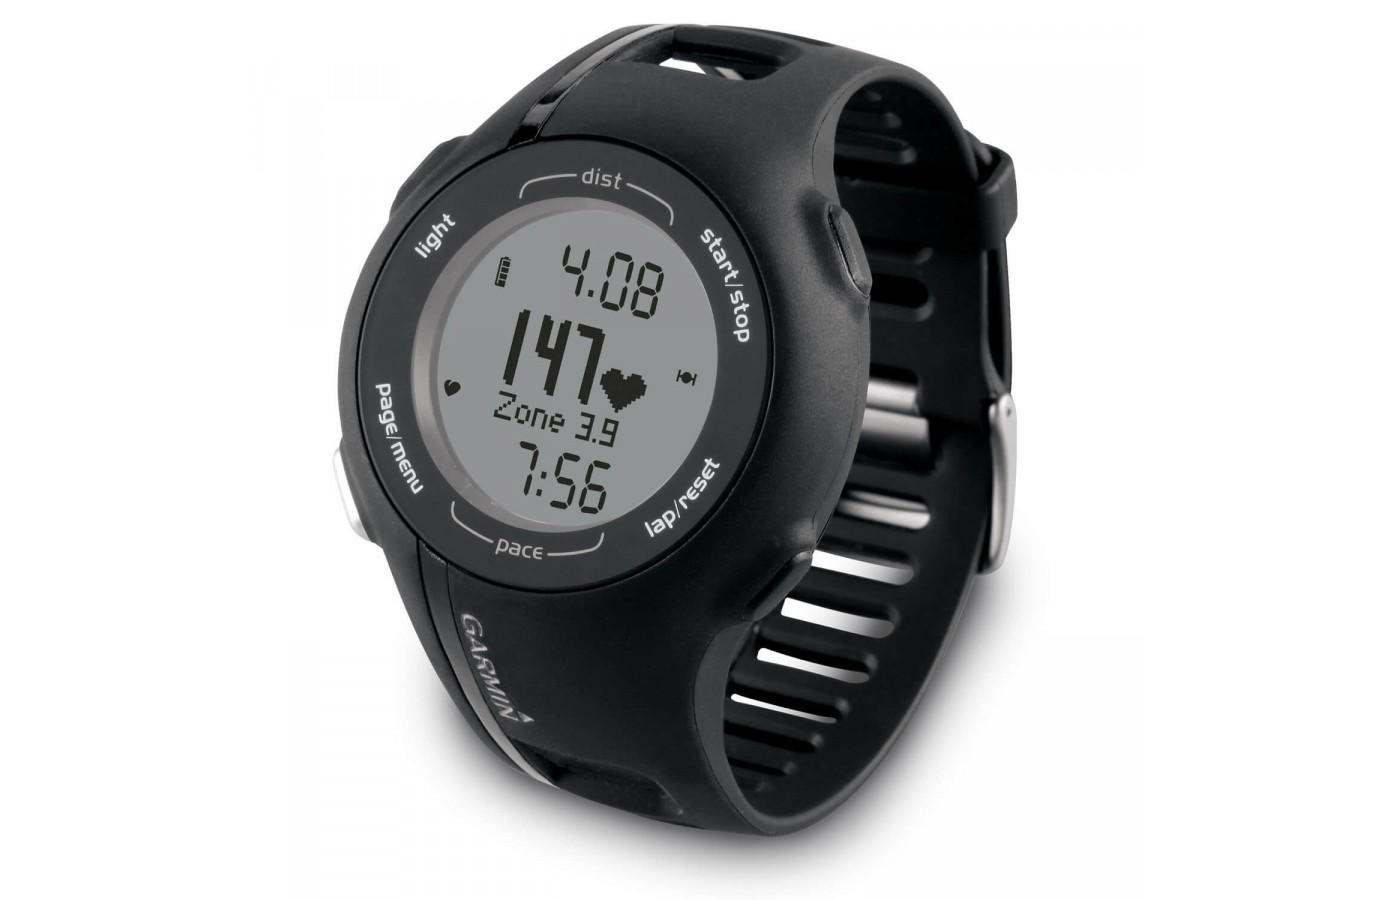 Forerunner 210 is a basic GPS watch with optional heart rate monitor and foot pod